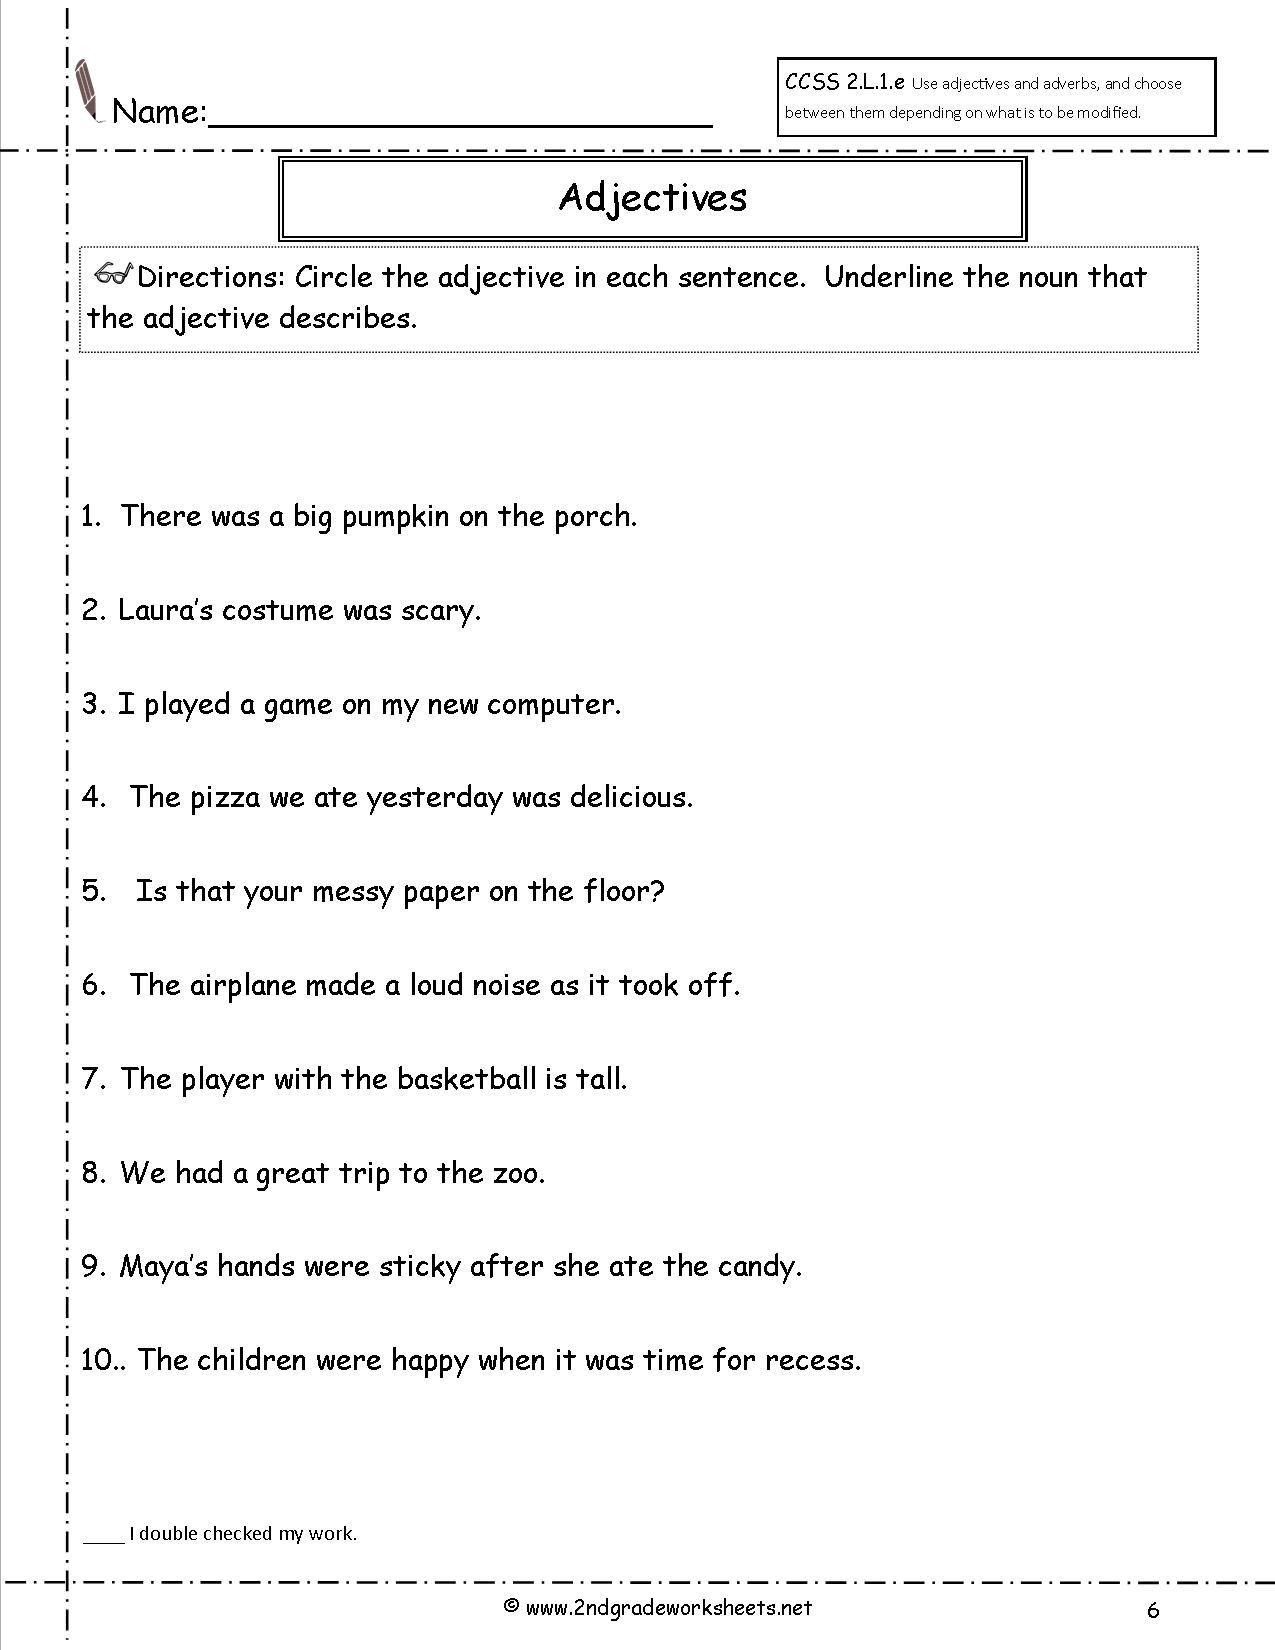 Adjectives Worksheets 3rd Grade Looking for Tutor Anime Girl Coloring Pages Adjectives